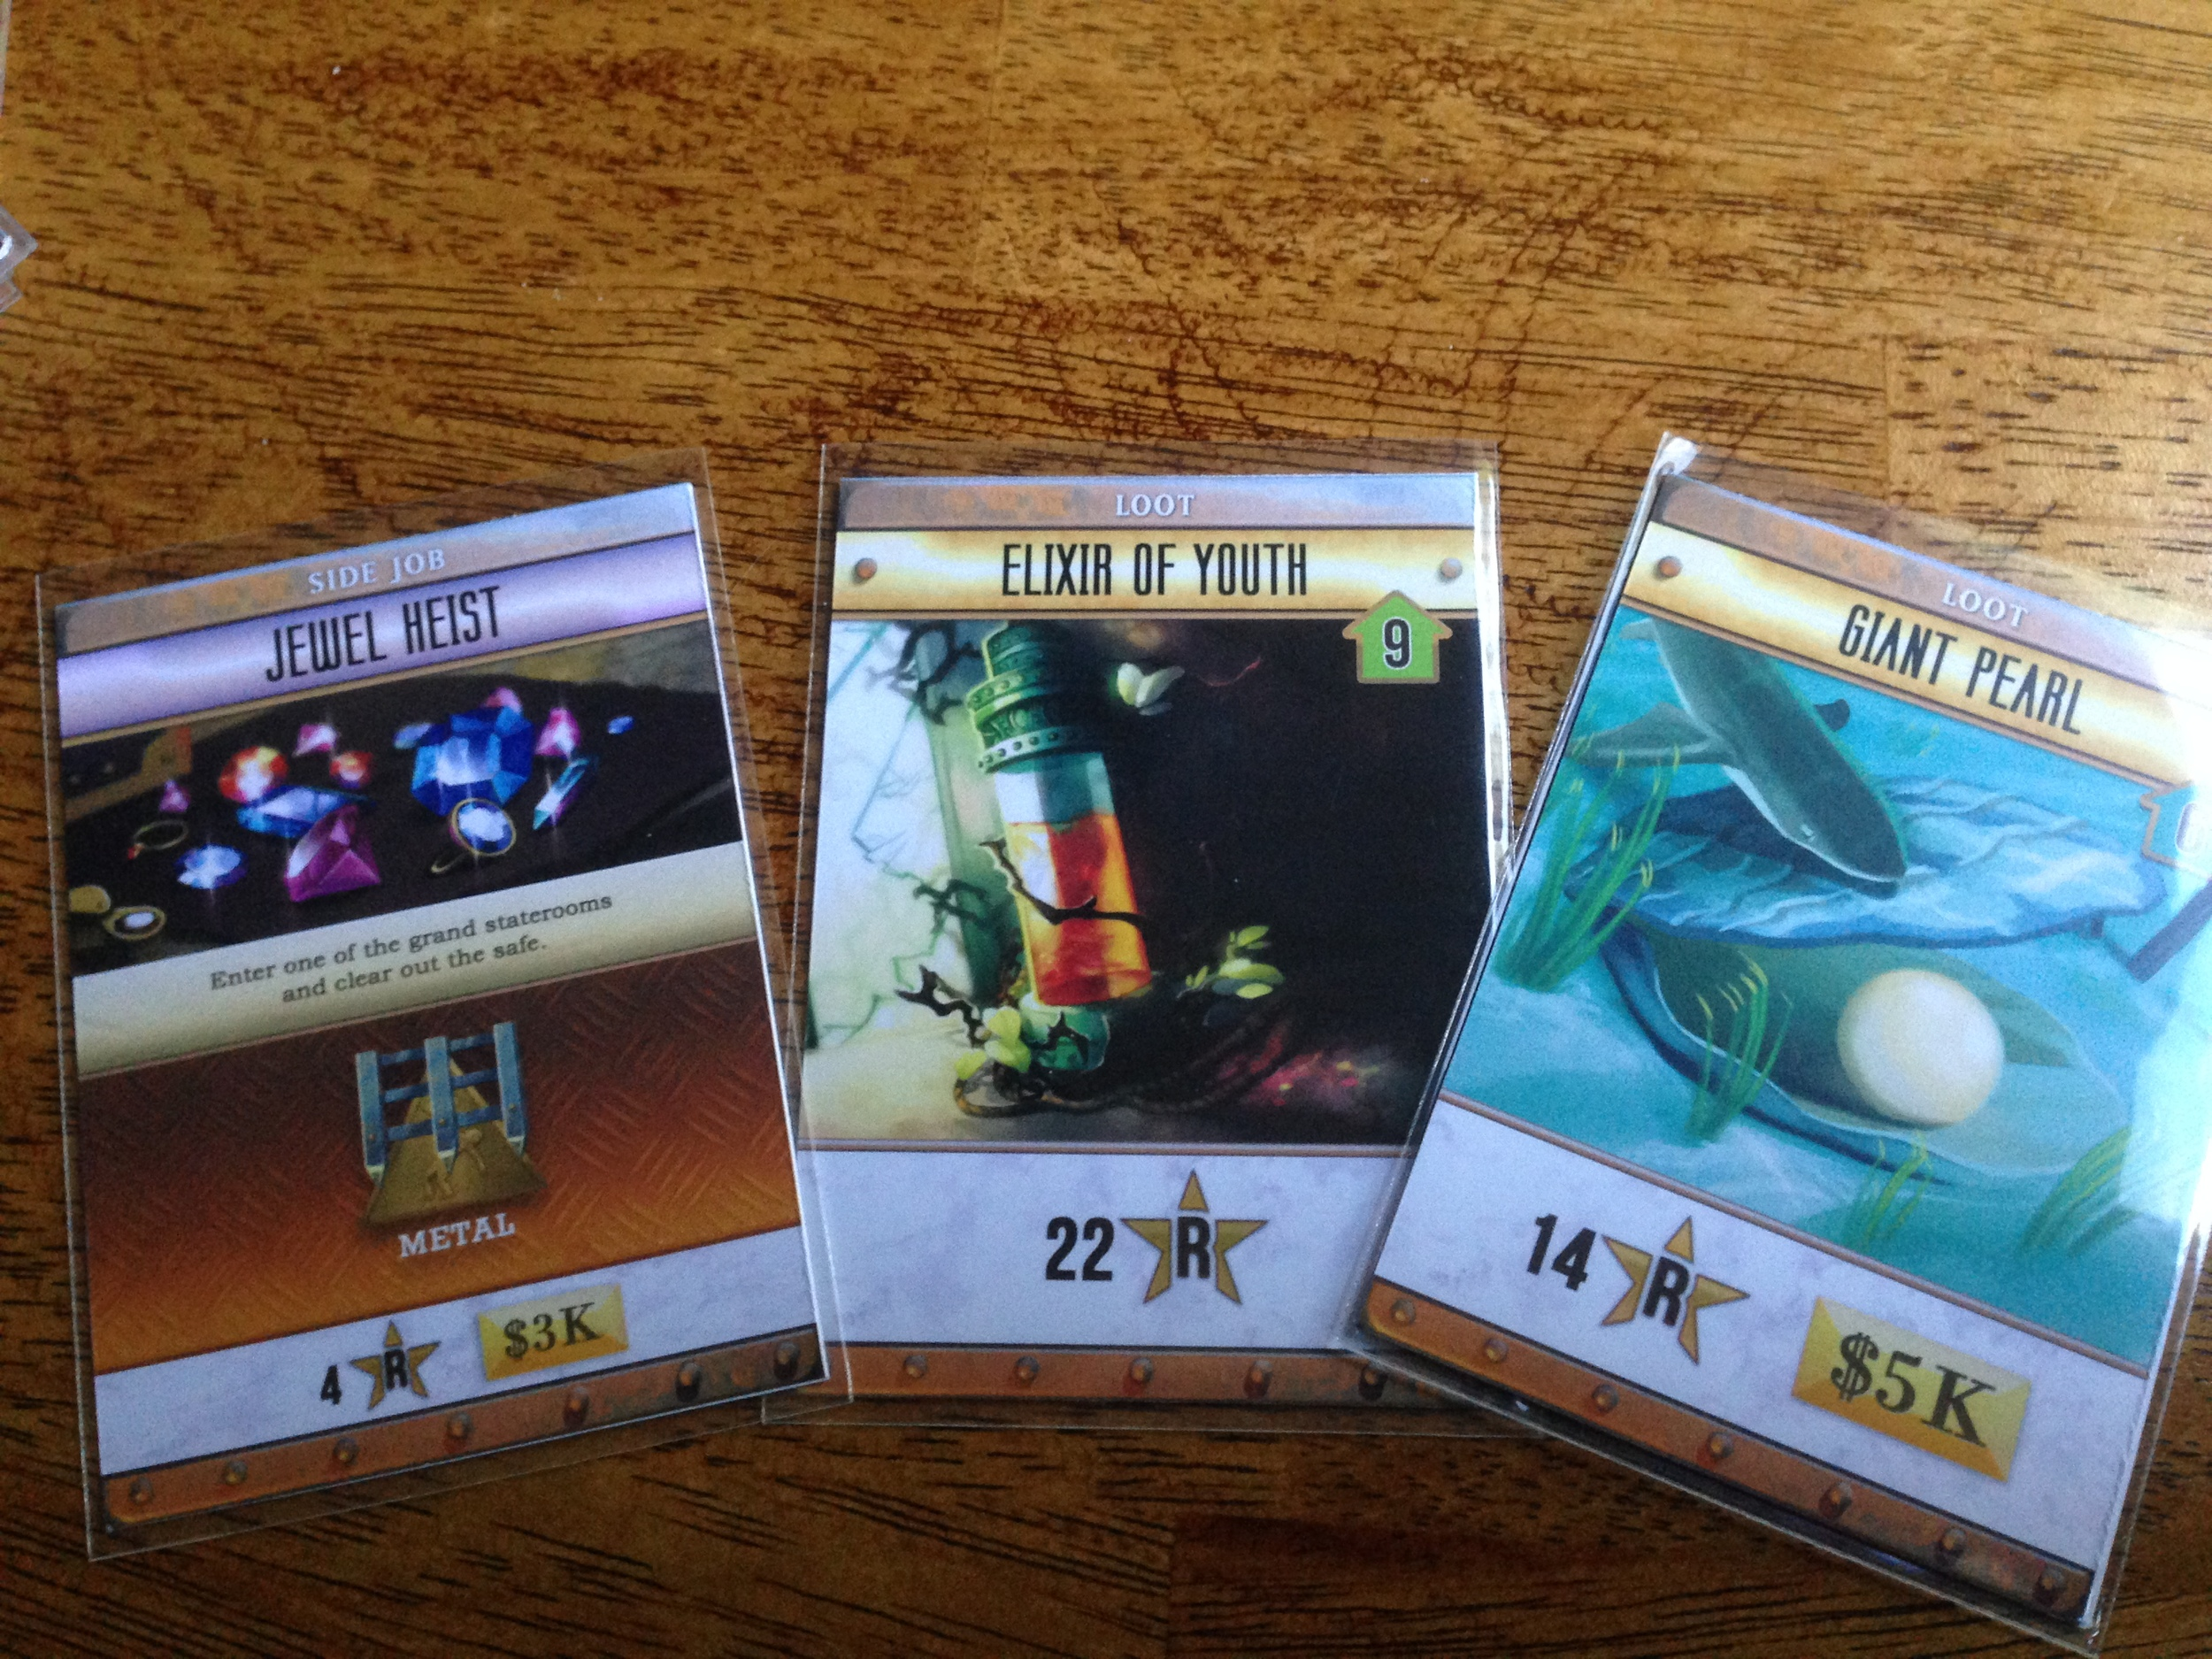 Some Side job and Loot cards